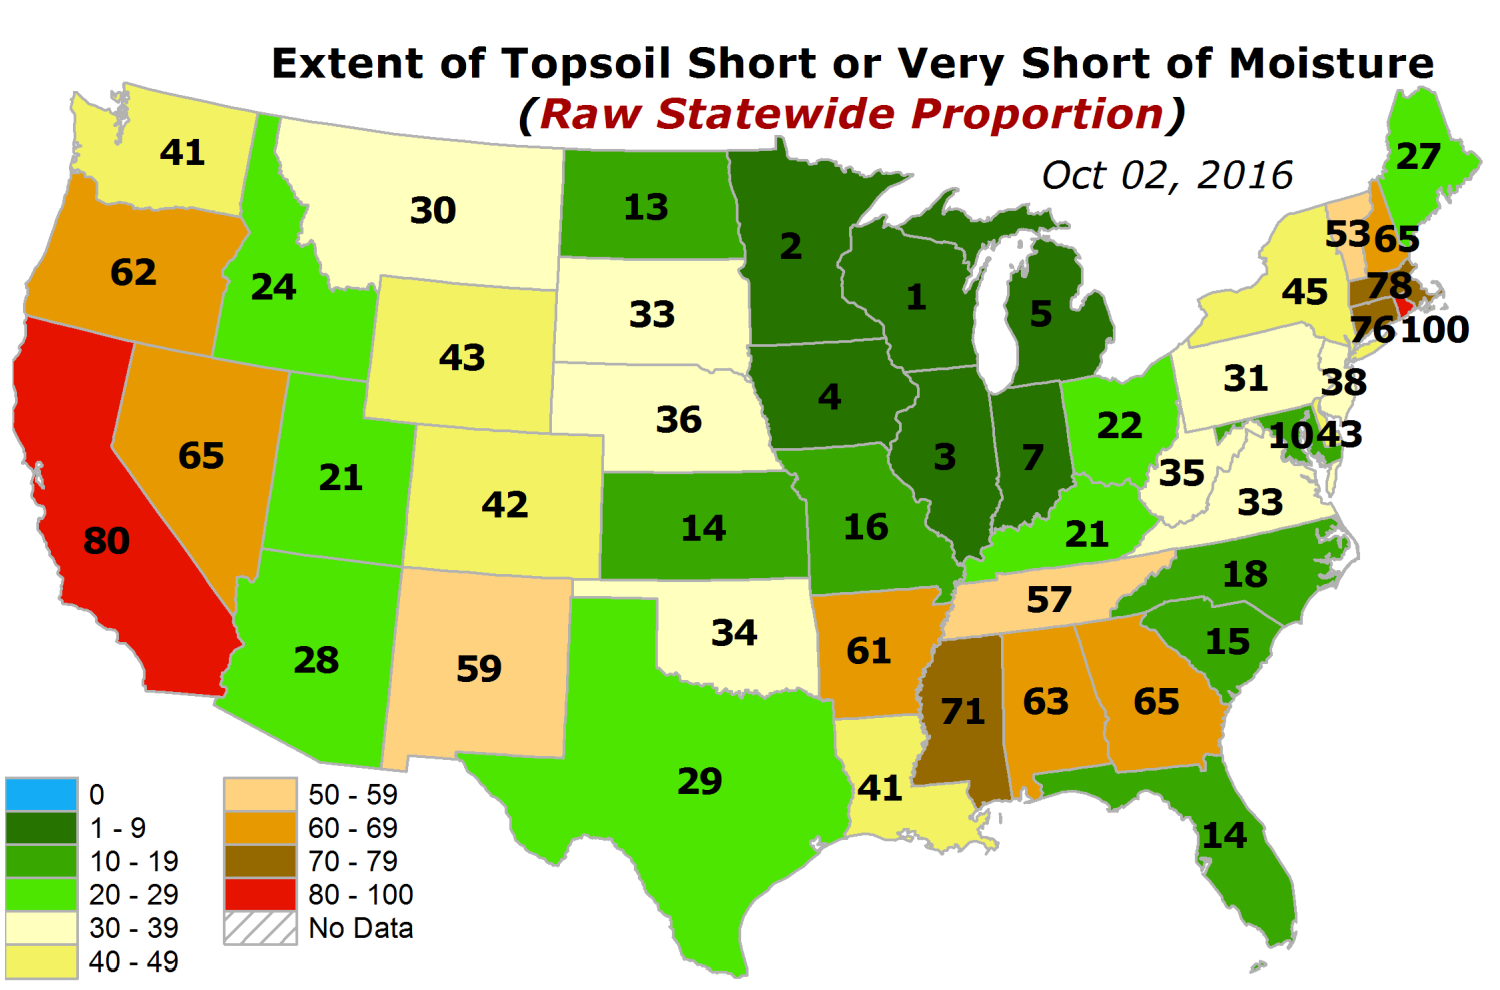 USDA topsoil and subsoil short and very short of moisture